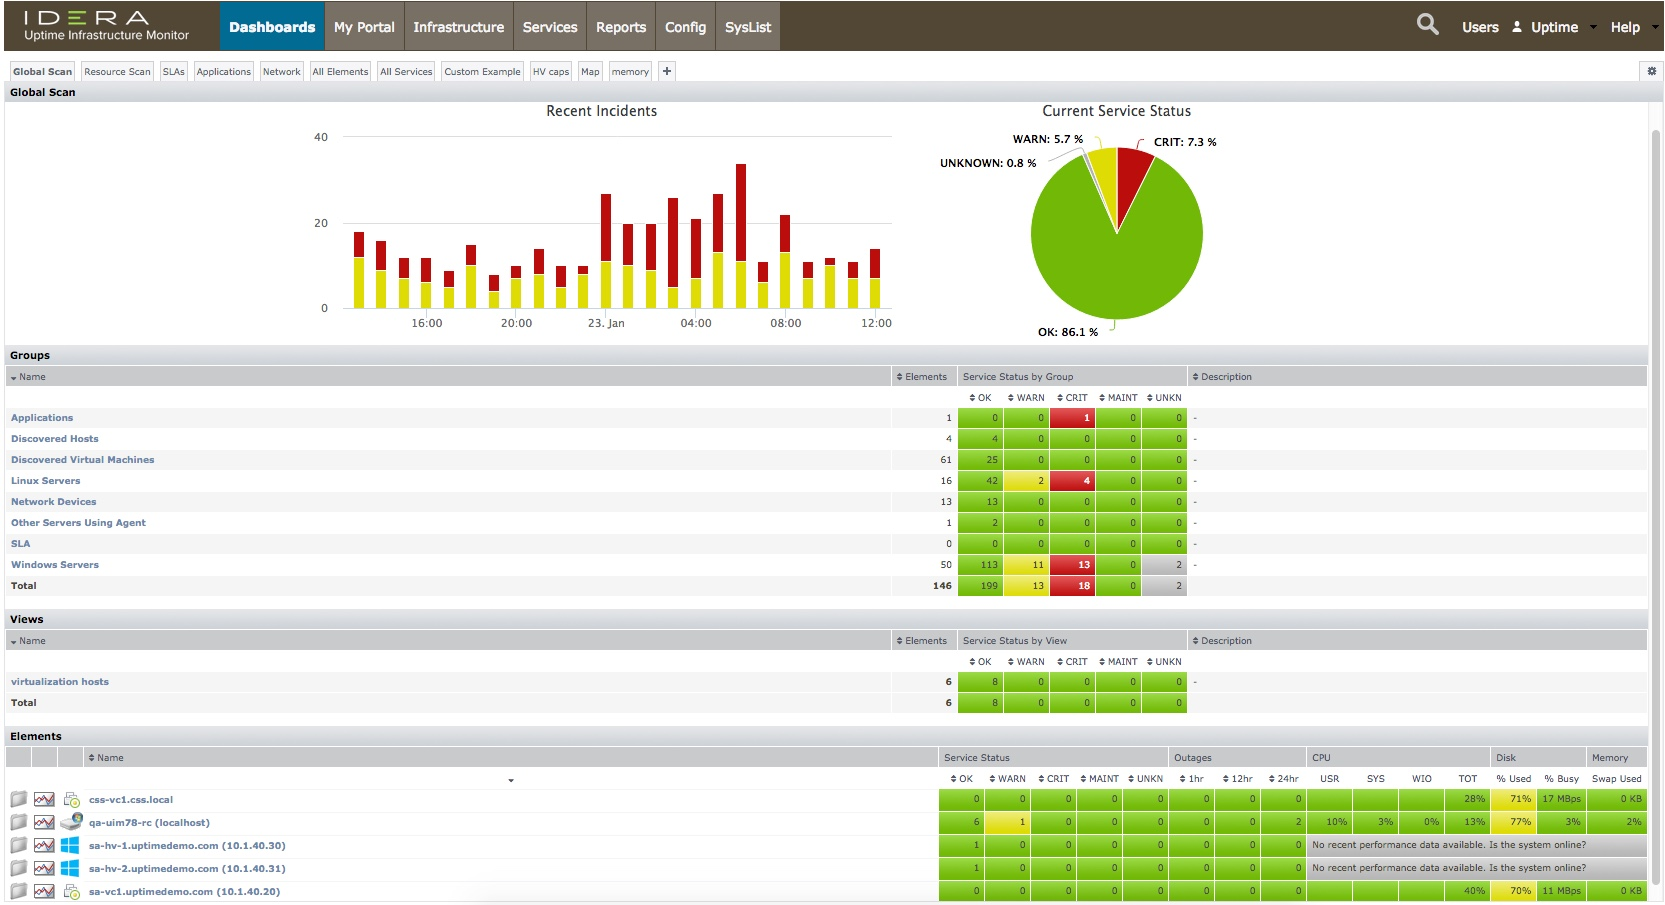 Uptime Infrastructure Monitor - Server | IDERA